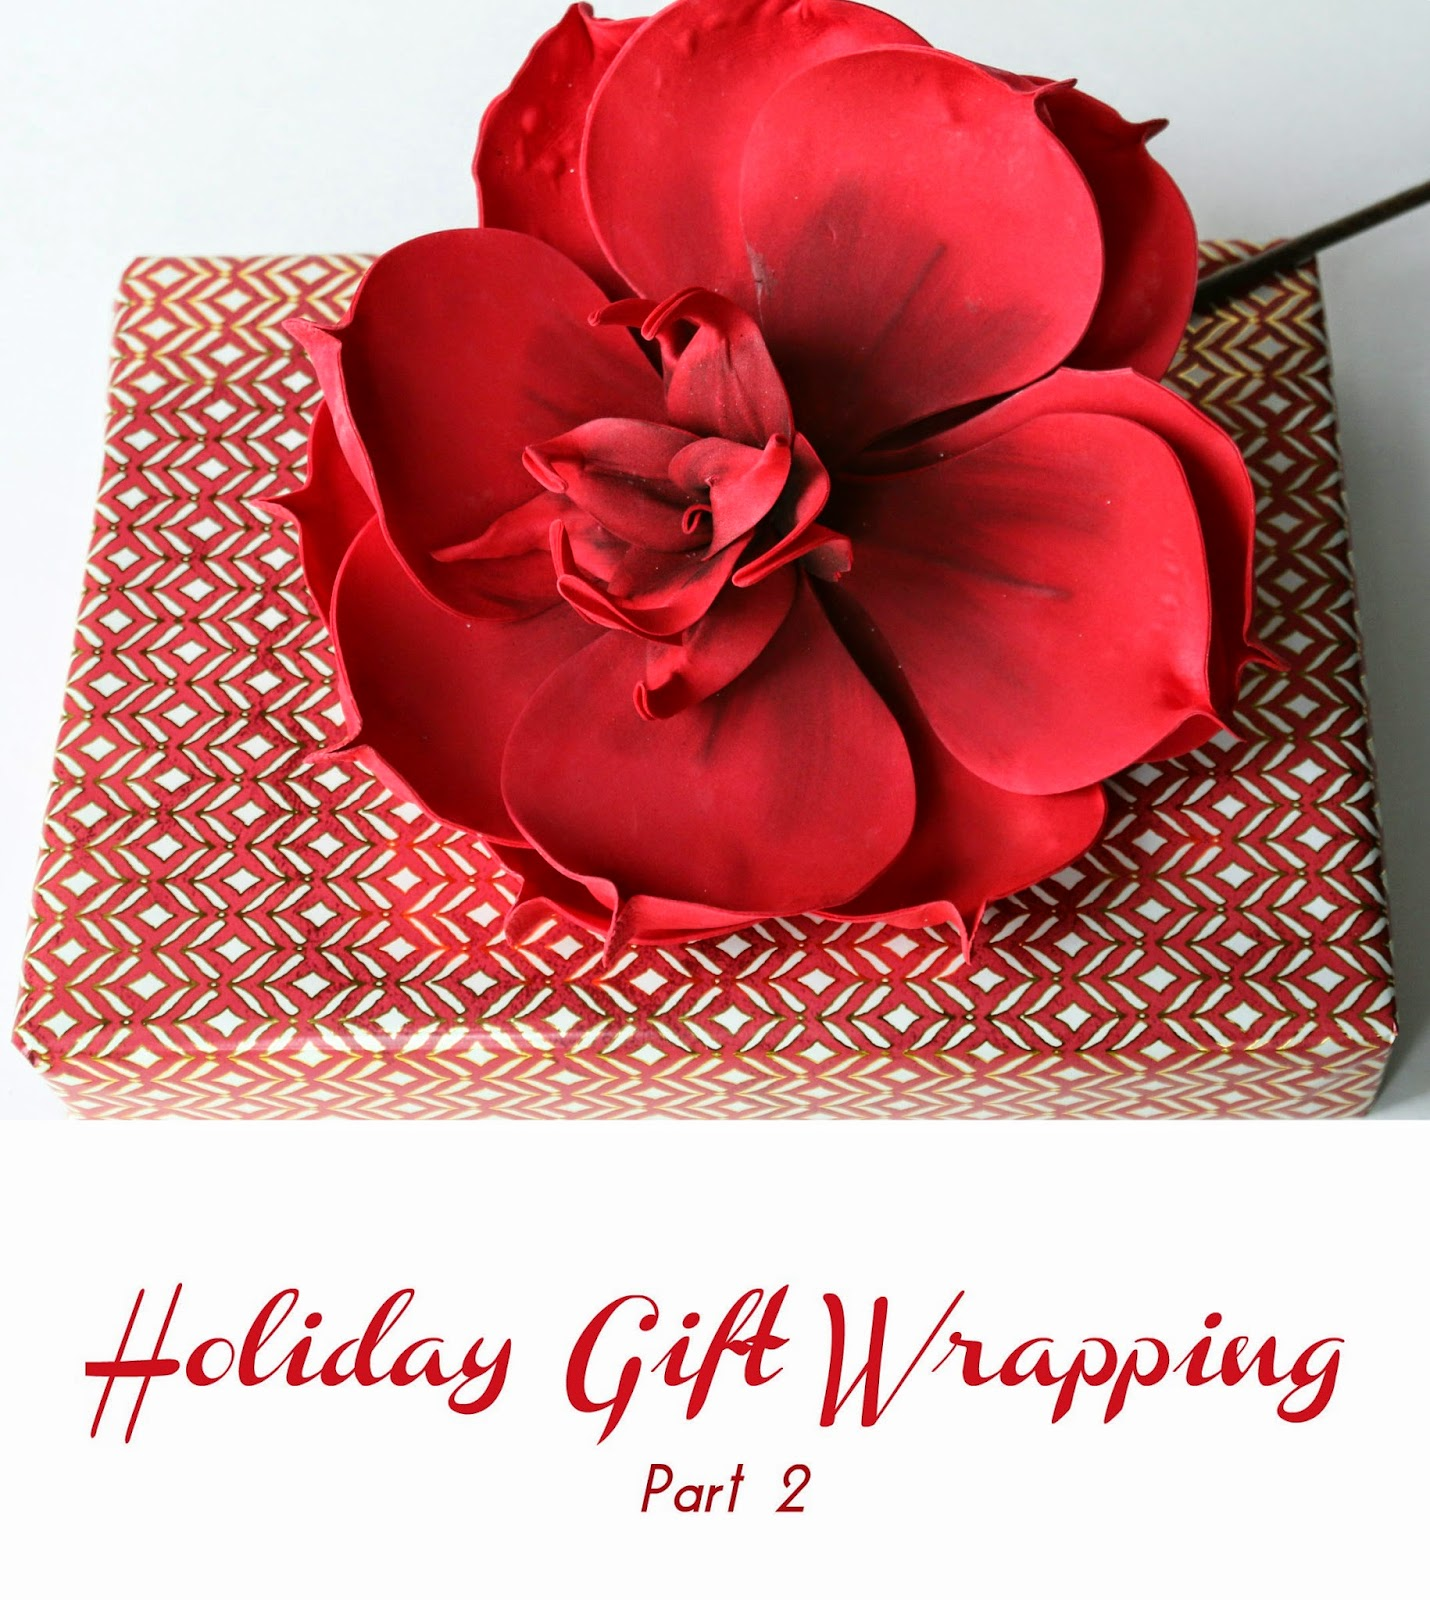 Holiday Gift Wrapping with Flowers